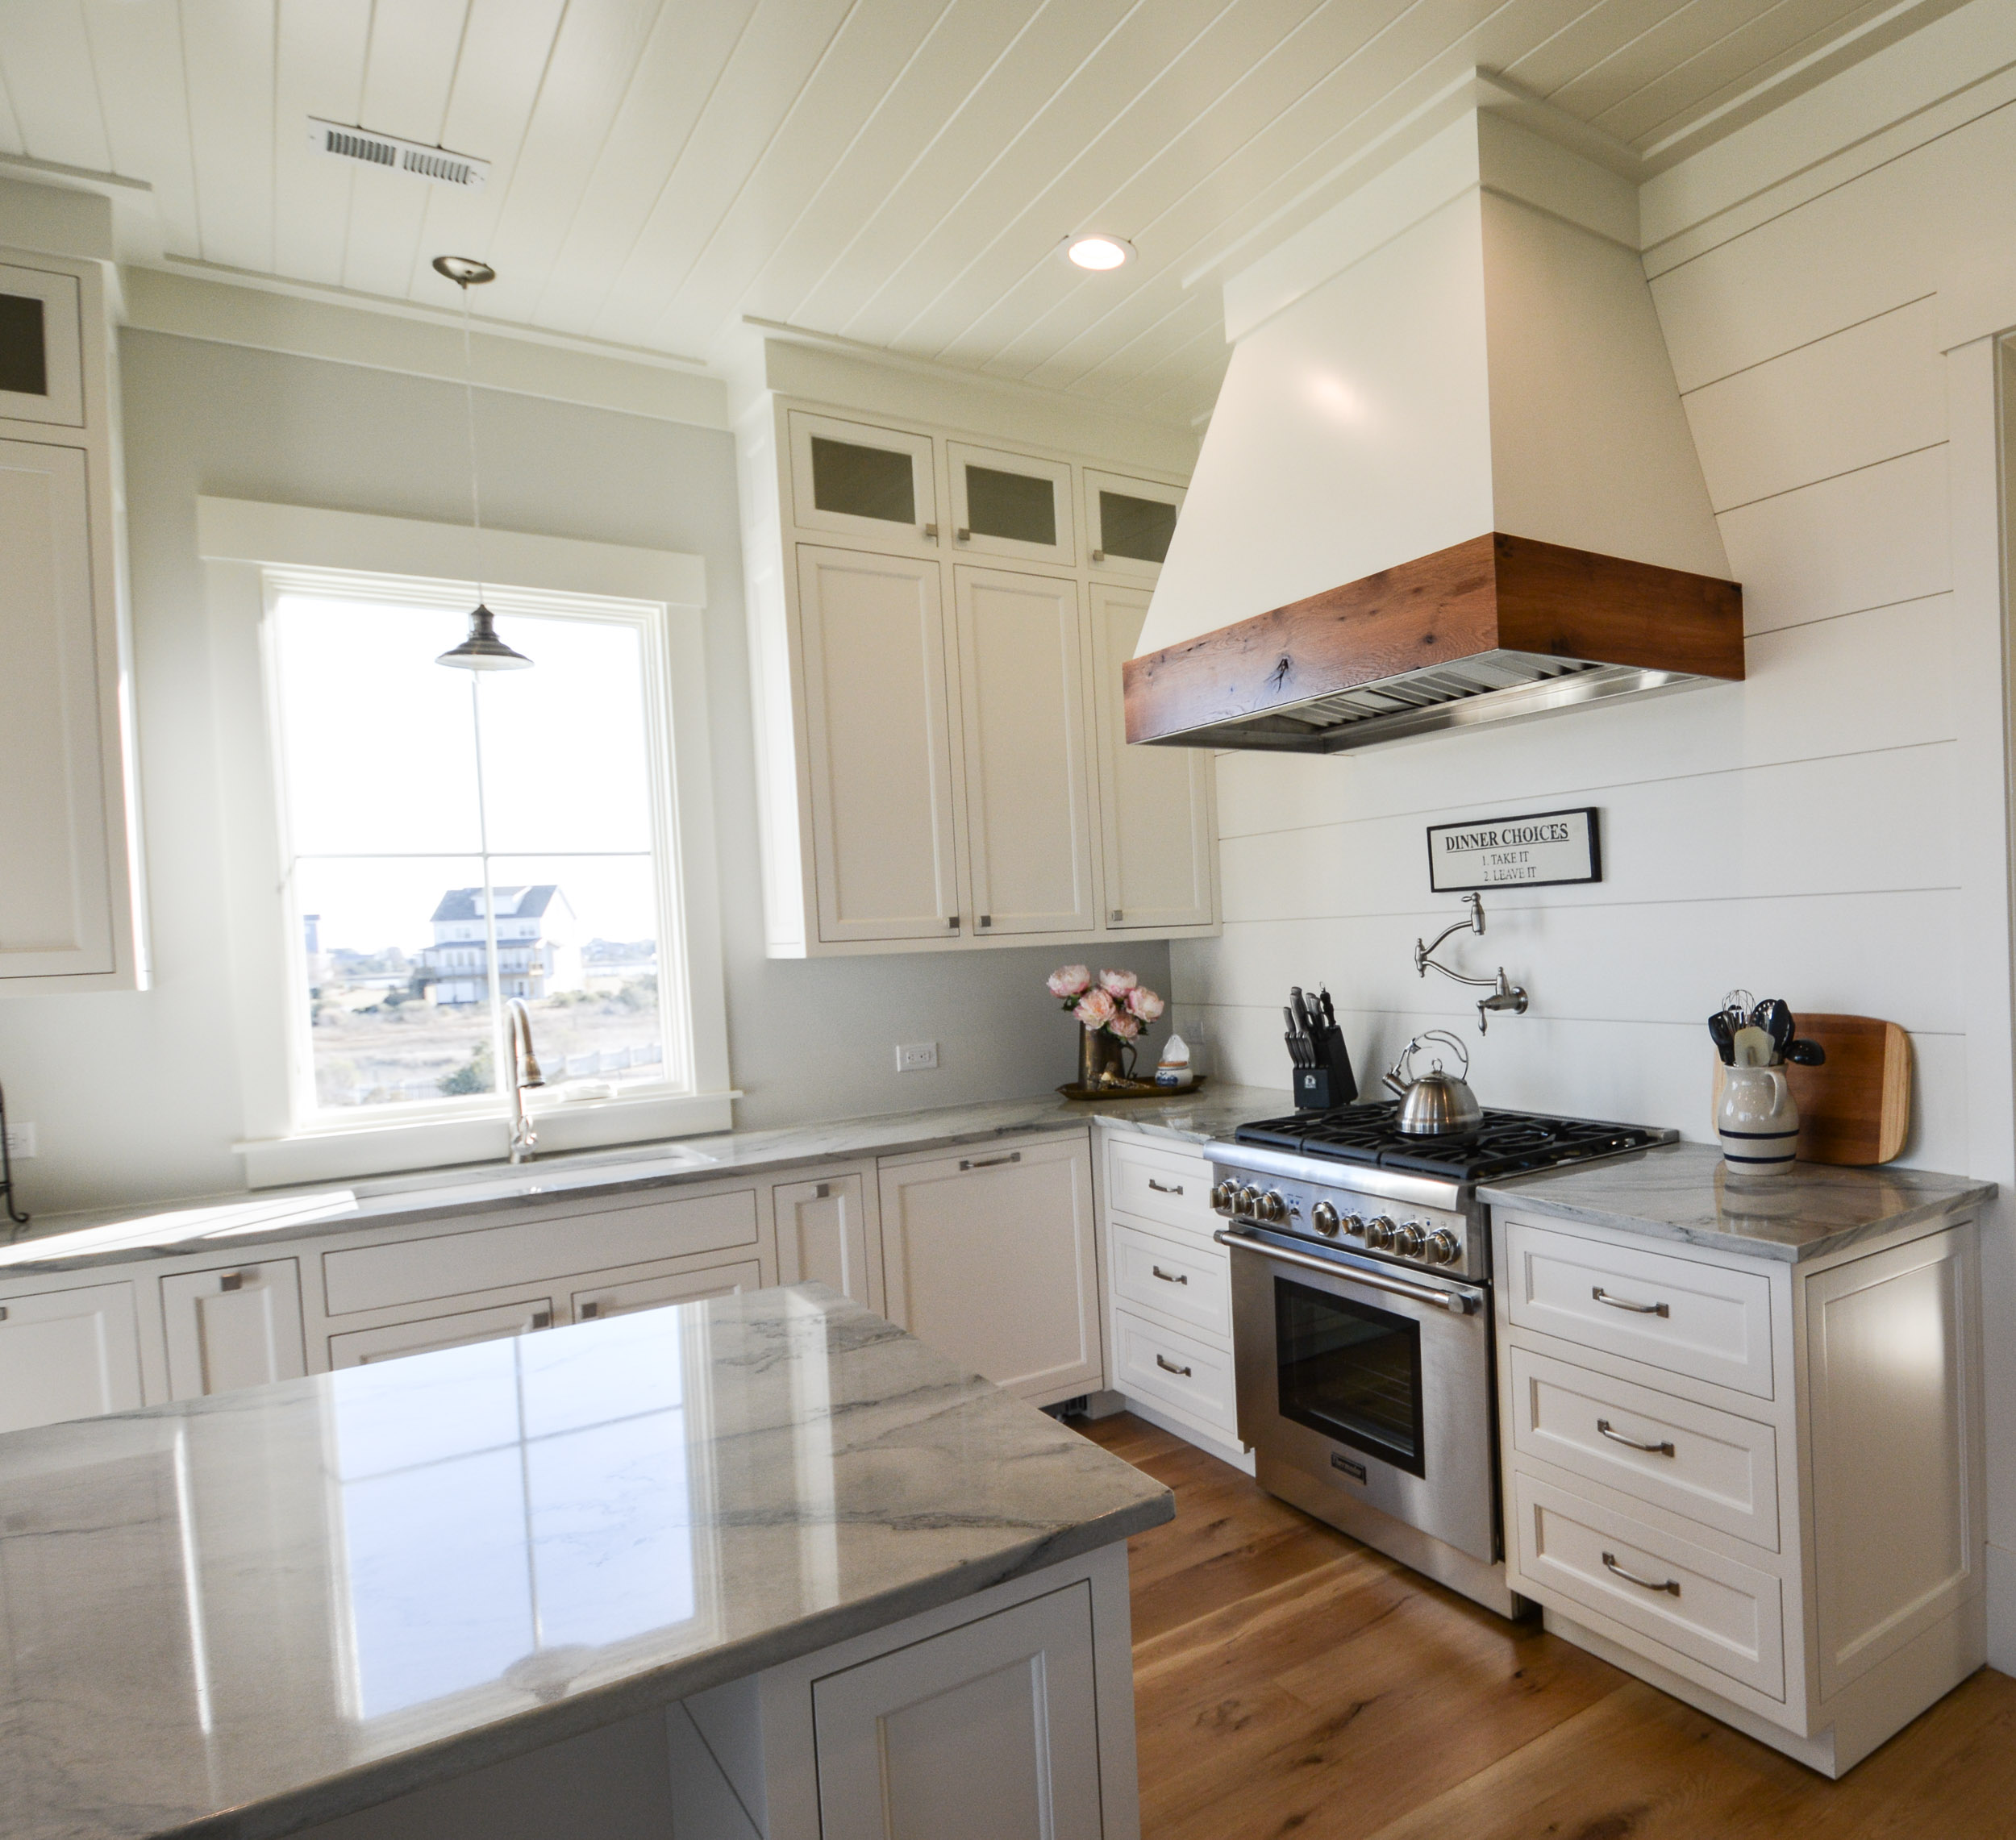 New Kitchen Build | Simmons Contracting Contractors in North Carolina